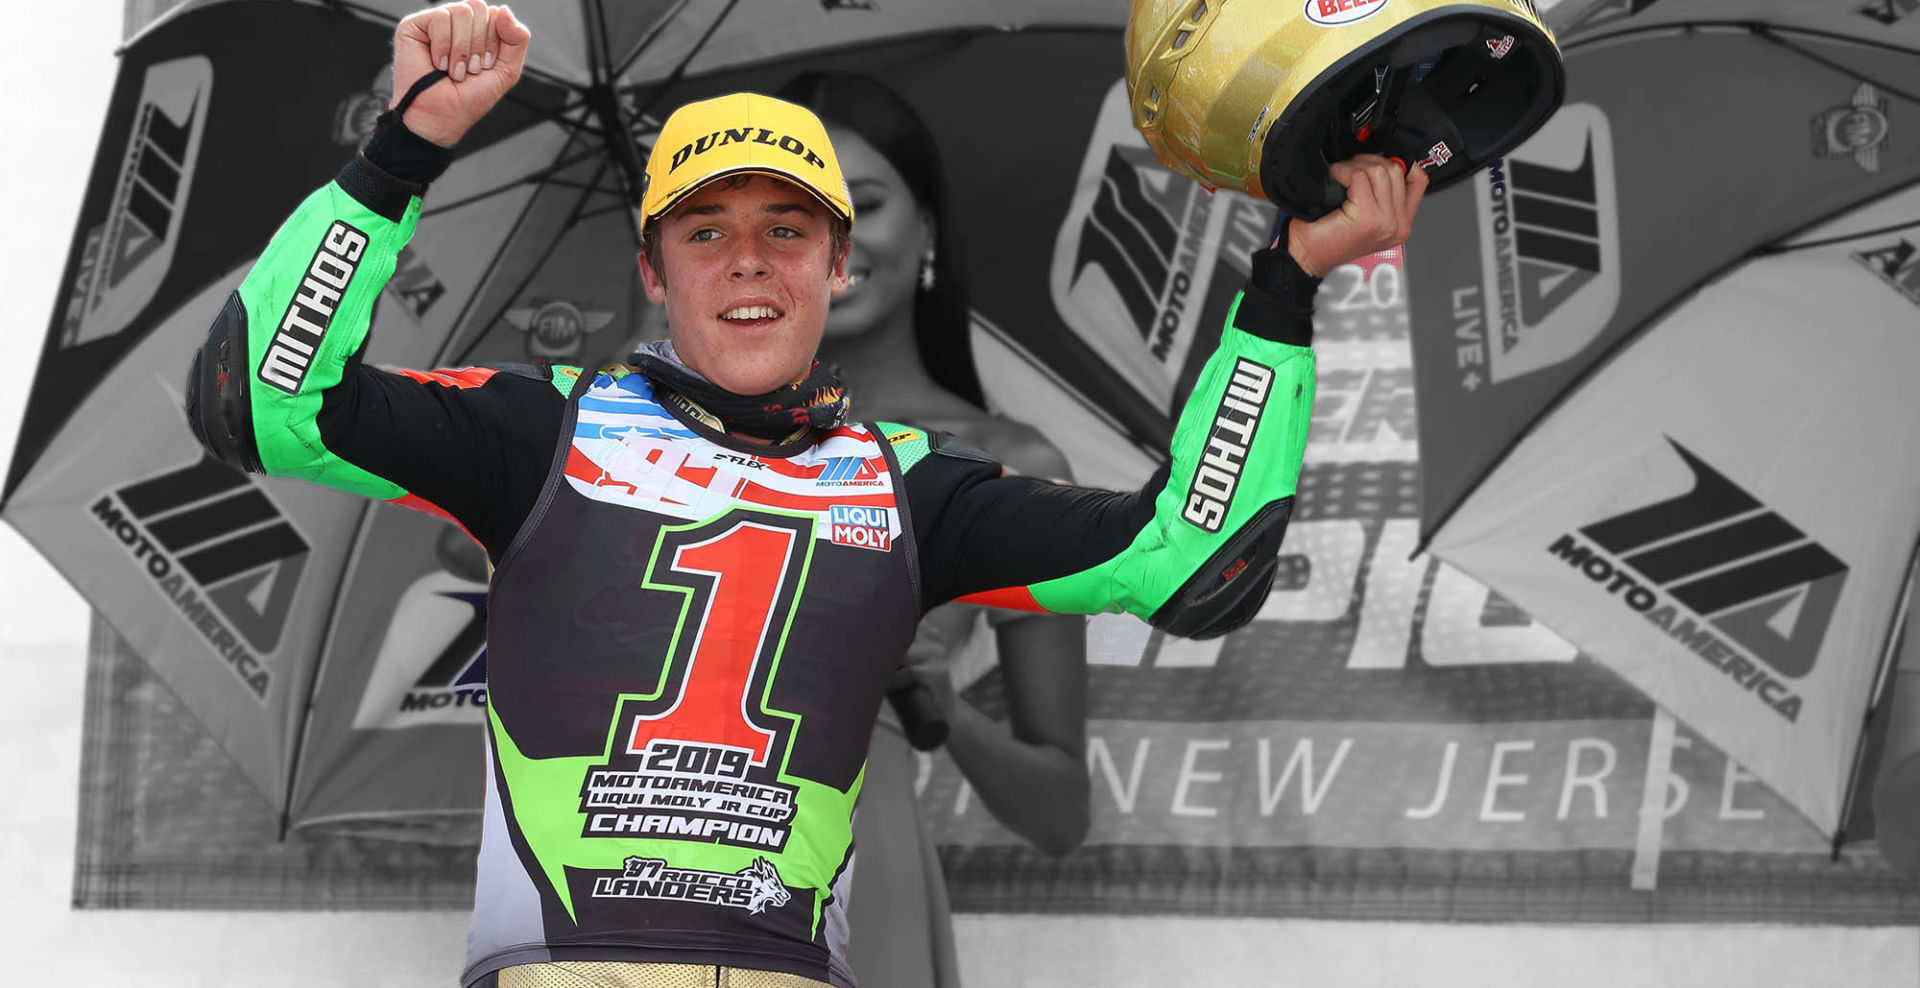 Mithos-sponsored Rocco Landers, the 2019 MotoAmerica Junior Cup Champion. Photo by Brian J. Nelson, courtesy of Mithos USA.